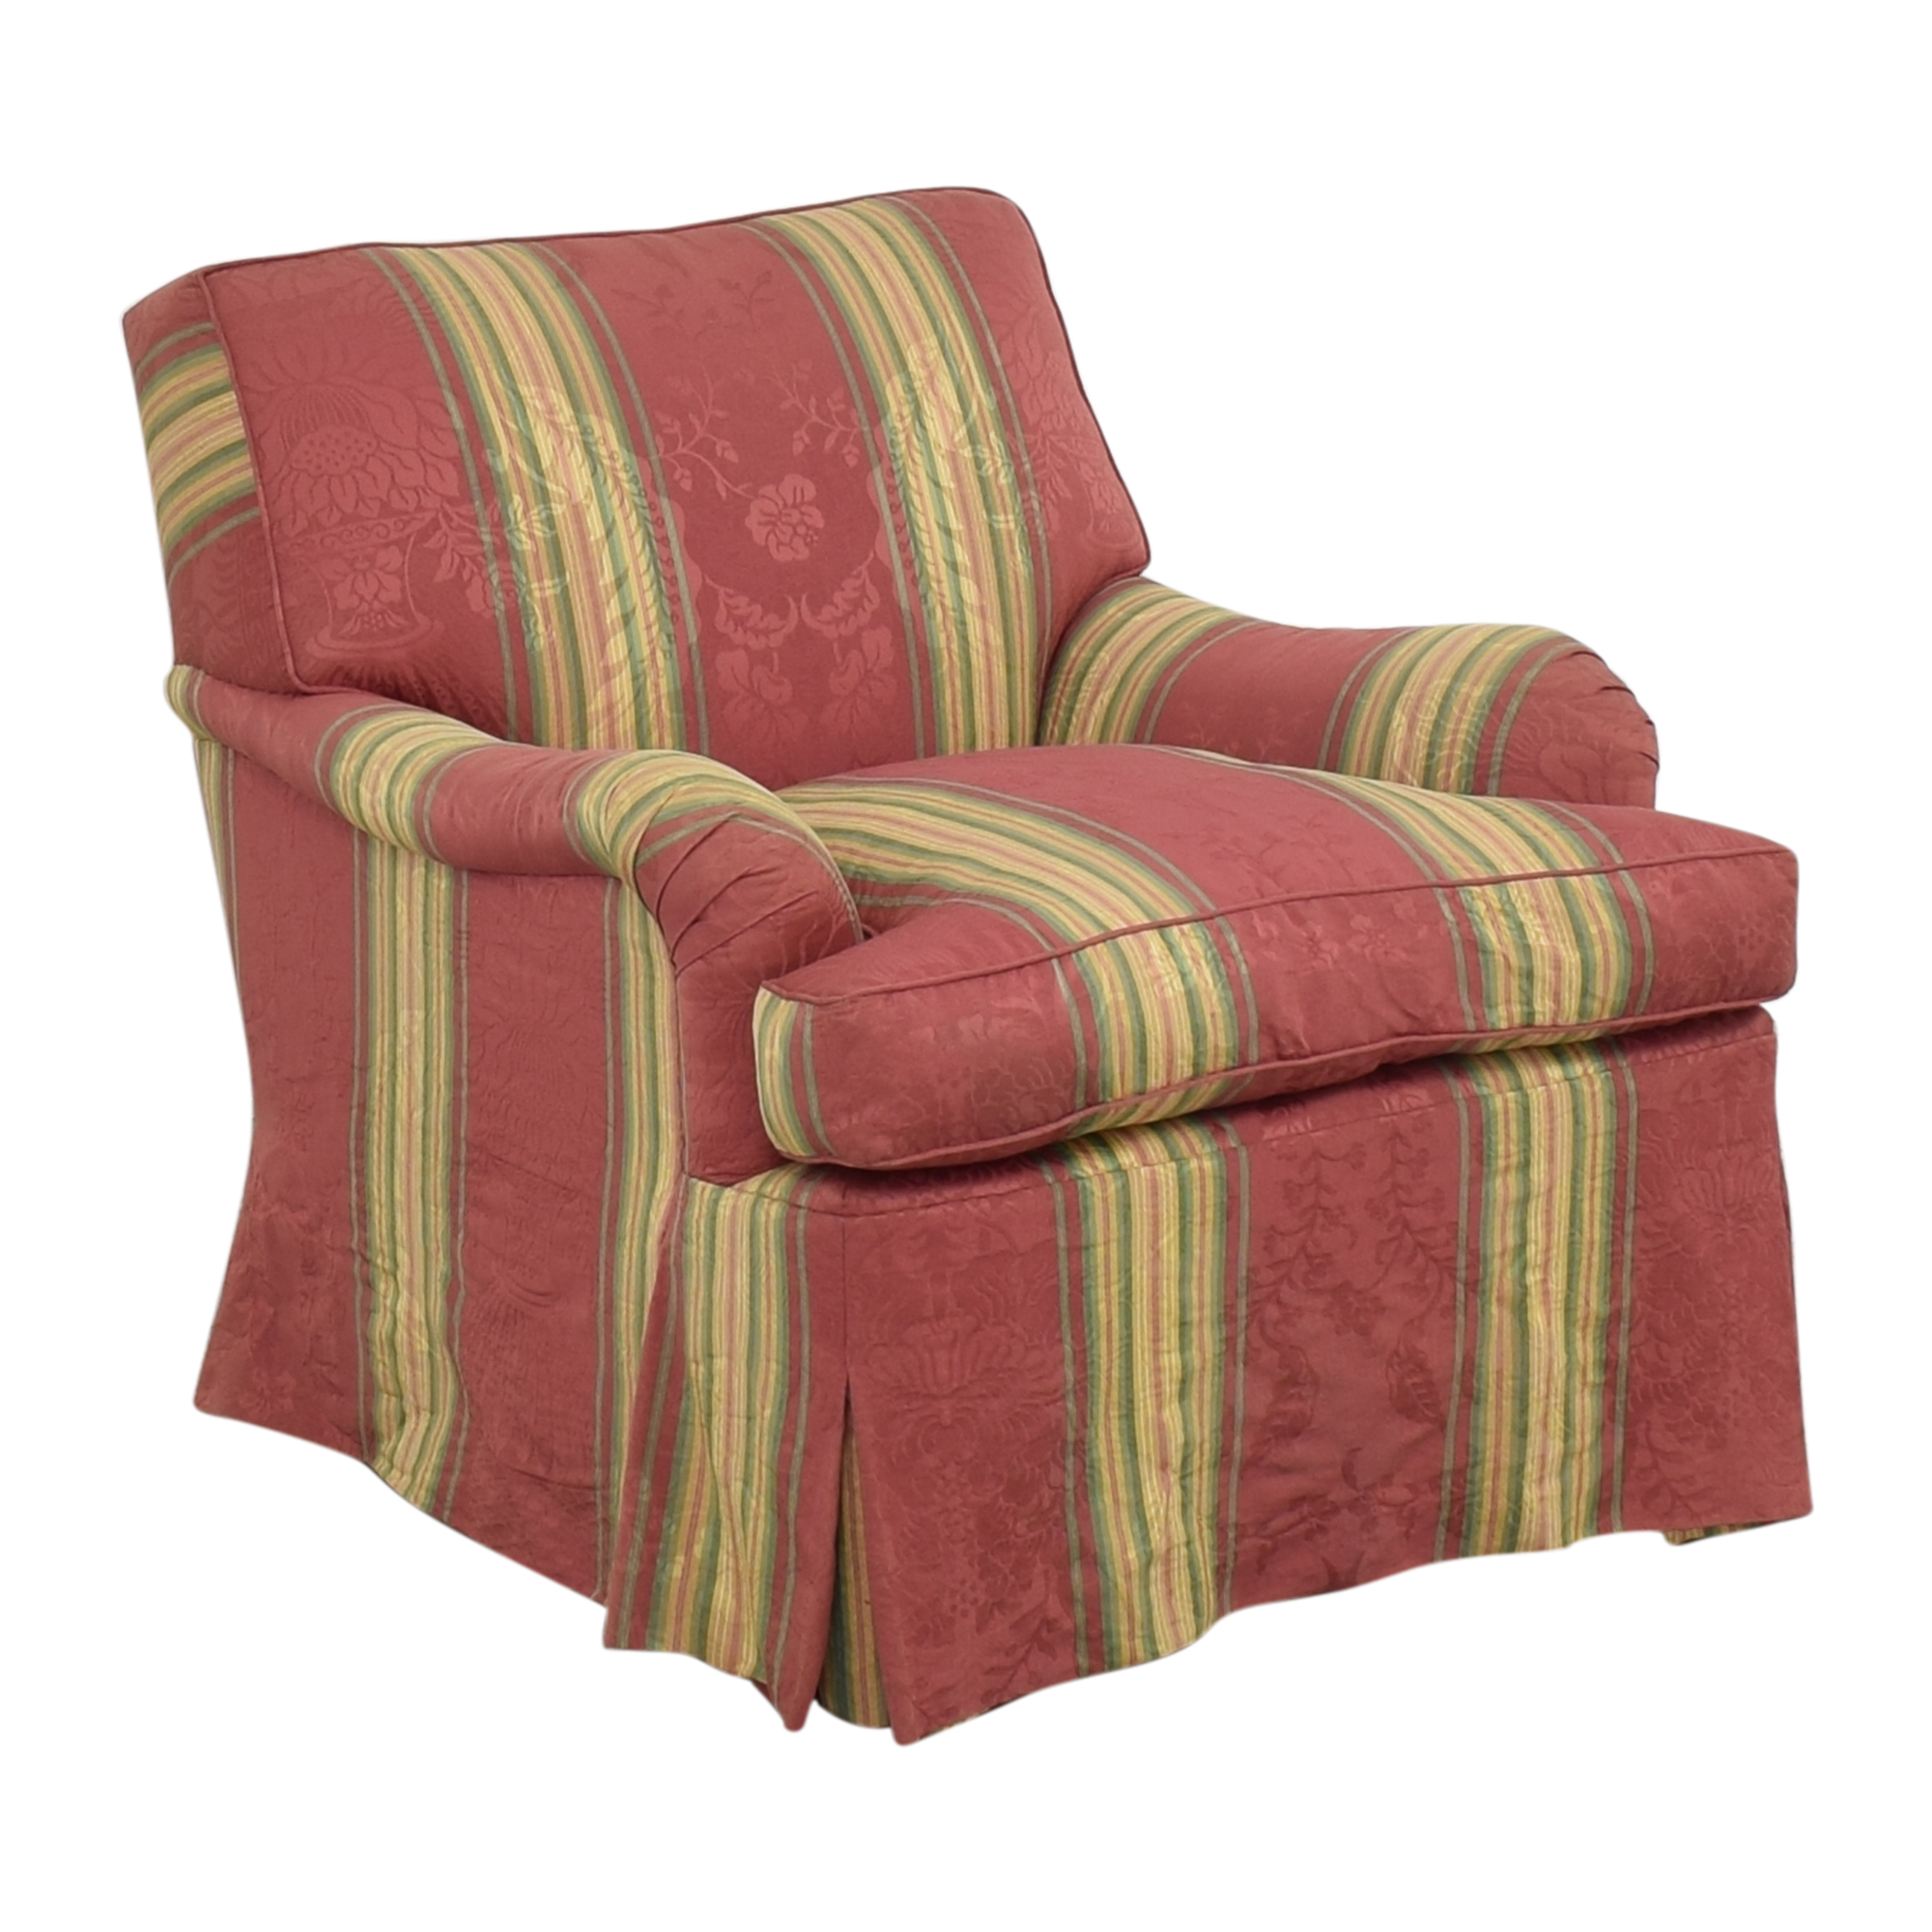 Bridgewater Accent Chair coupon